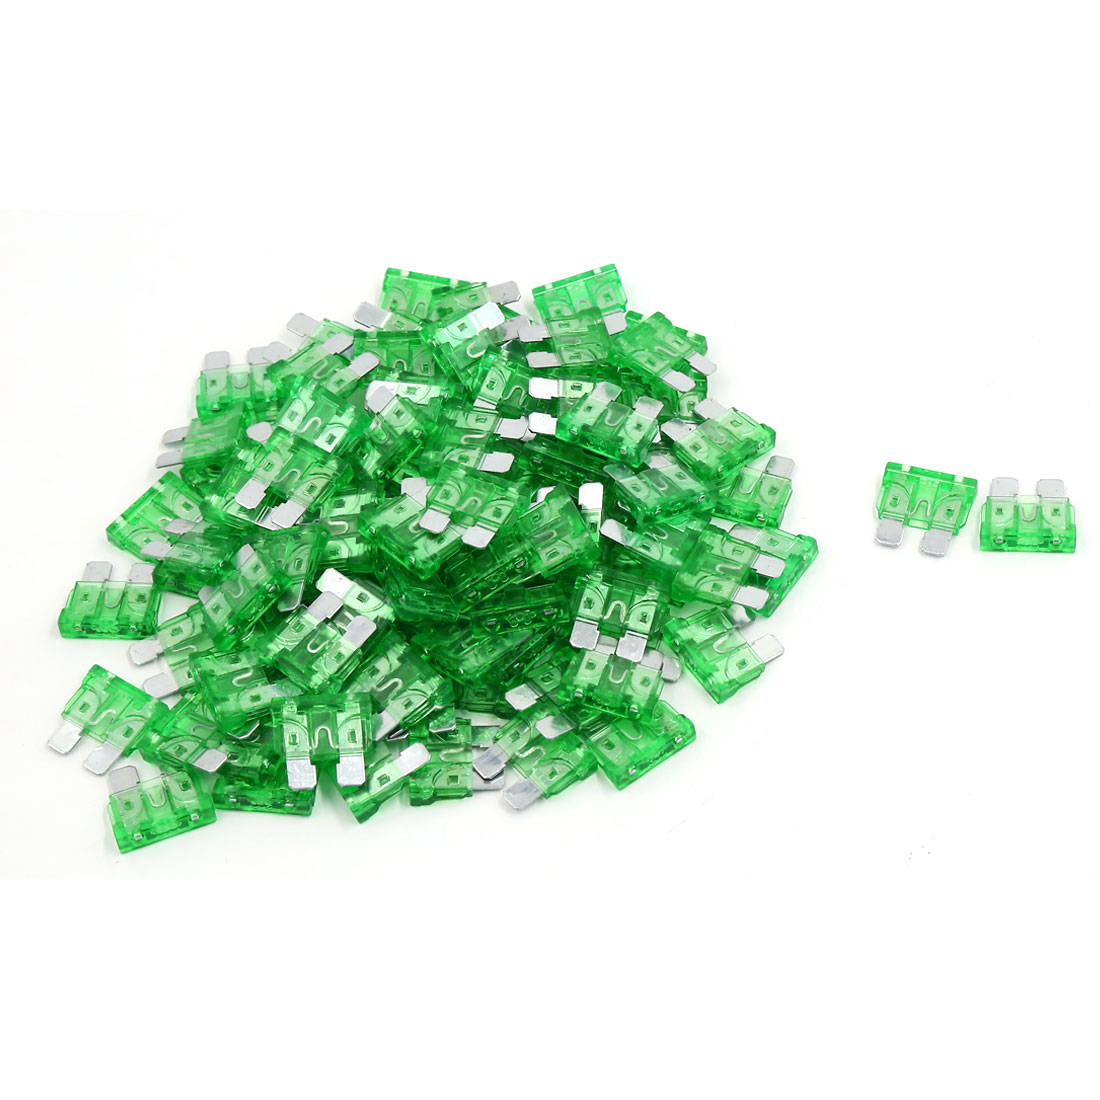 100 Pcs Green Plasic Housing Mototrcycle Car Medium Size Blade Fuse Fuses 30A